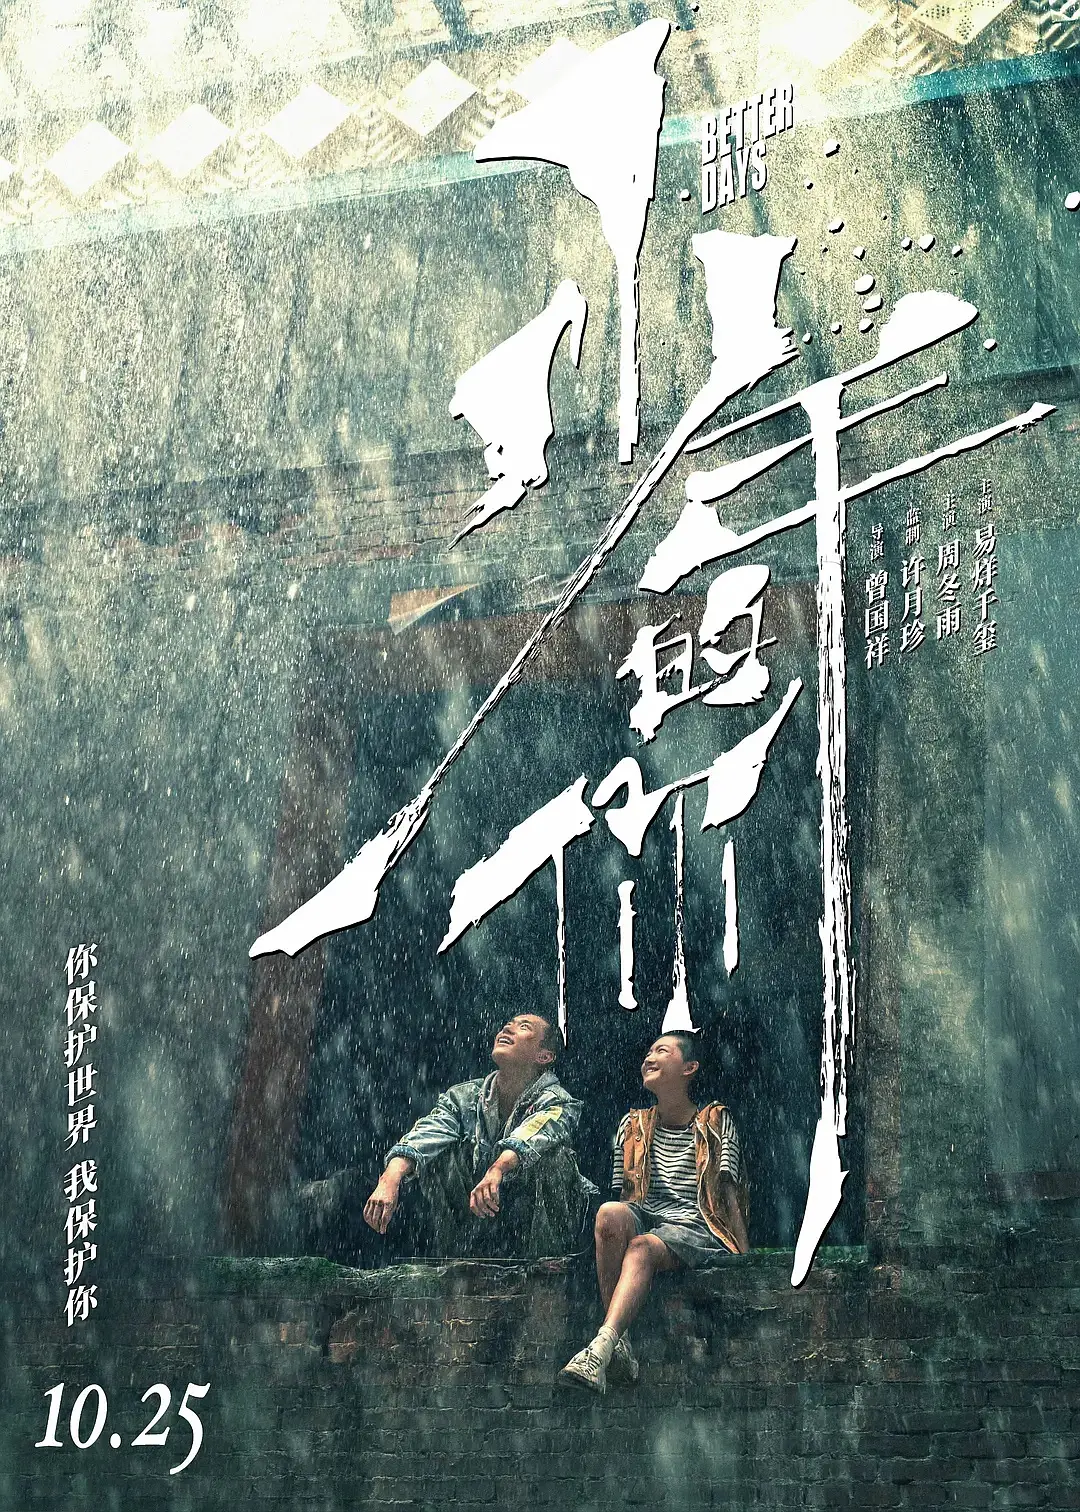 Another hot Chinese movie Better Days adapated from web